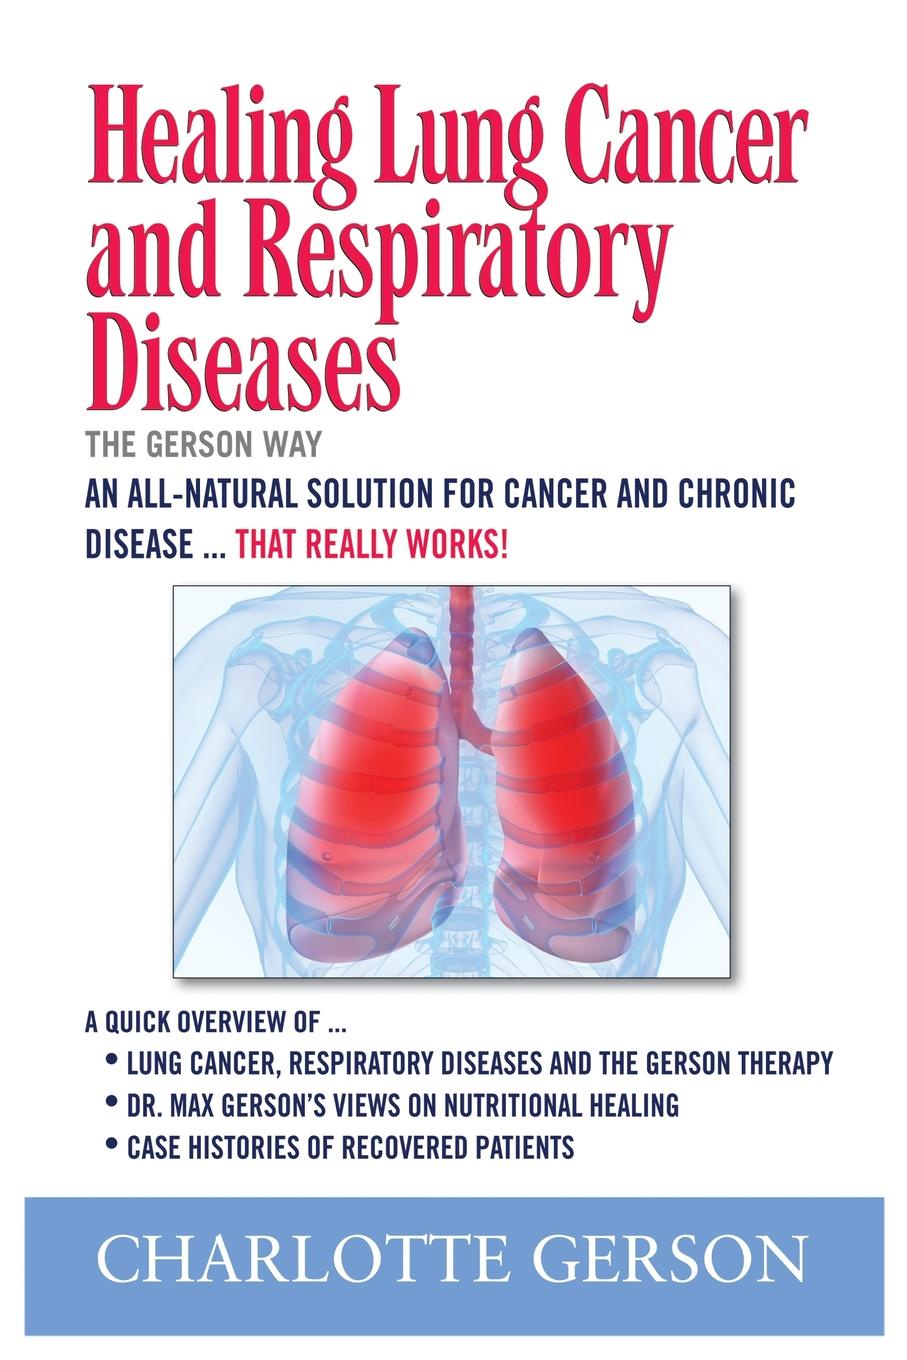 Charlotte Gerson Healing Lung Cancer and Respiratory Diseases. The Gerson Way alison leary lung cancer a multidisciplinary approach